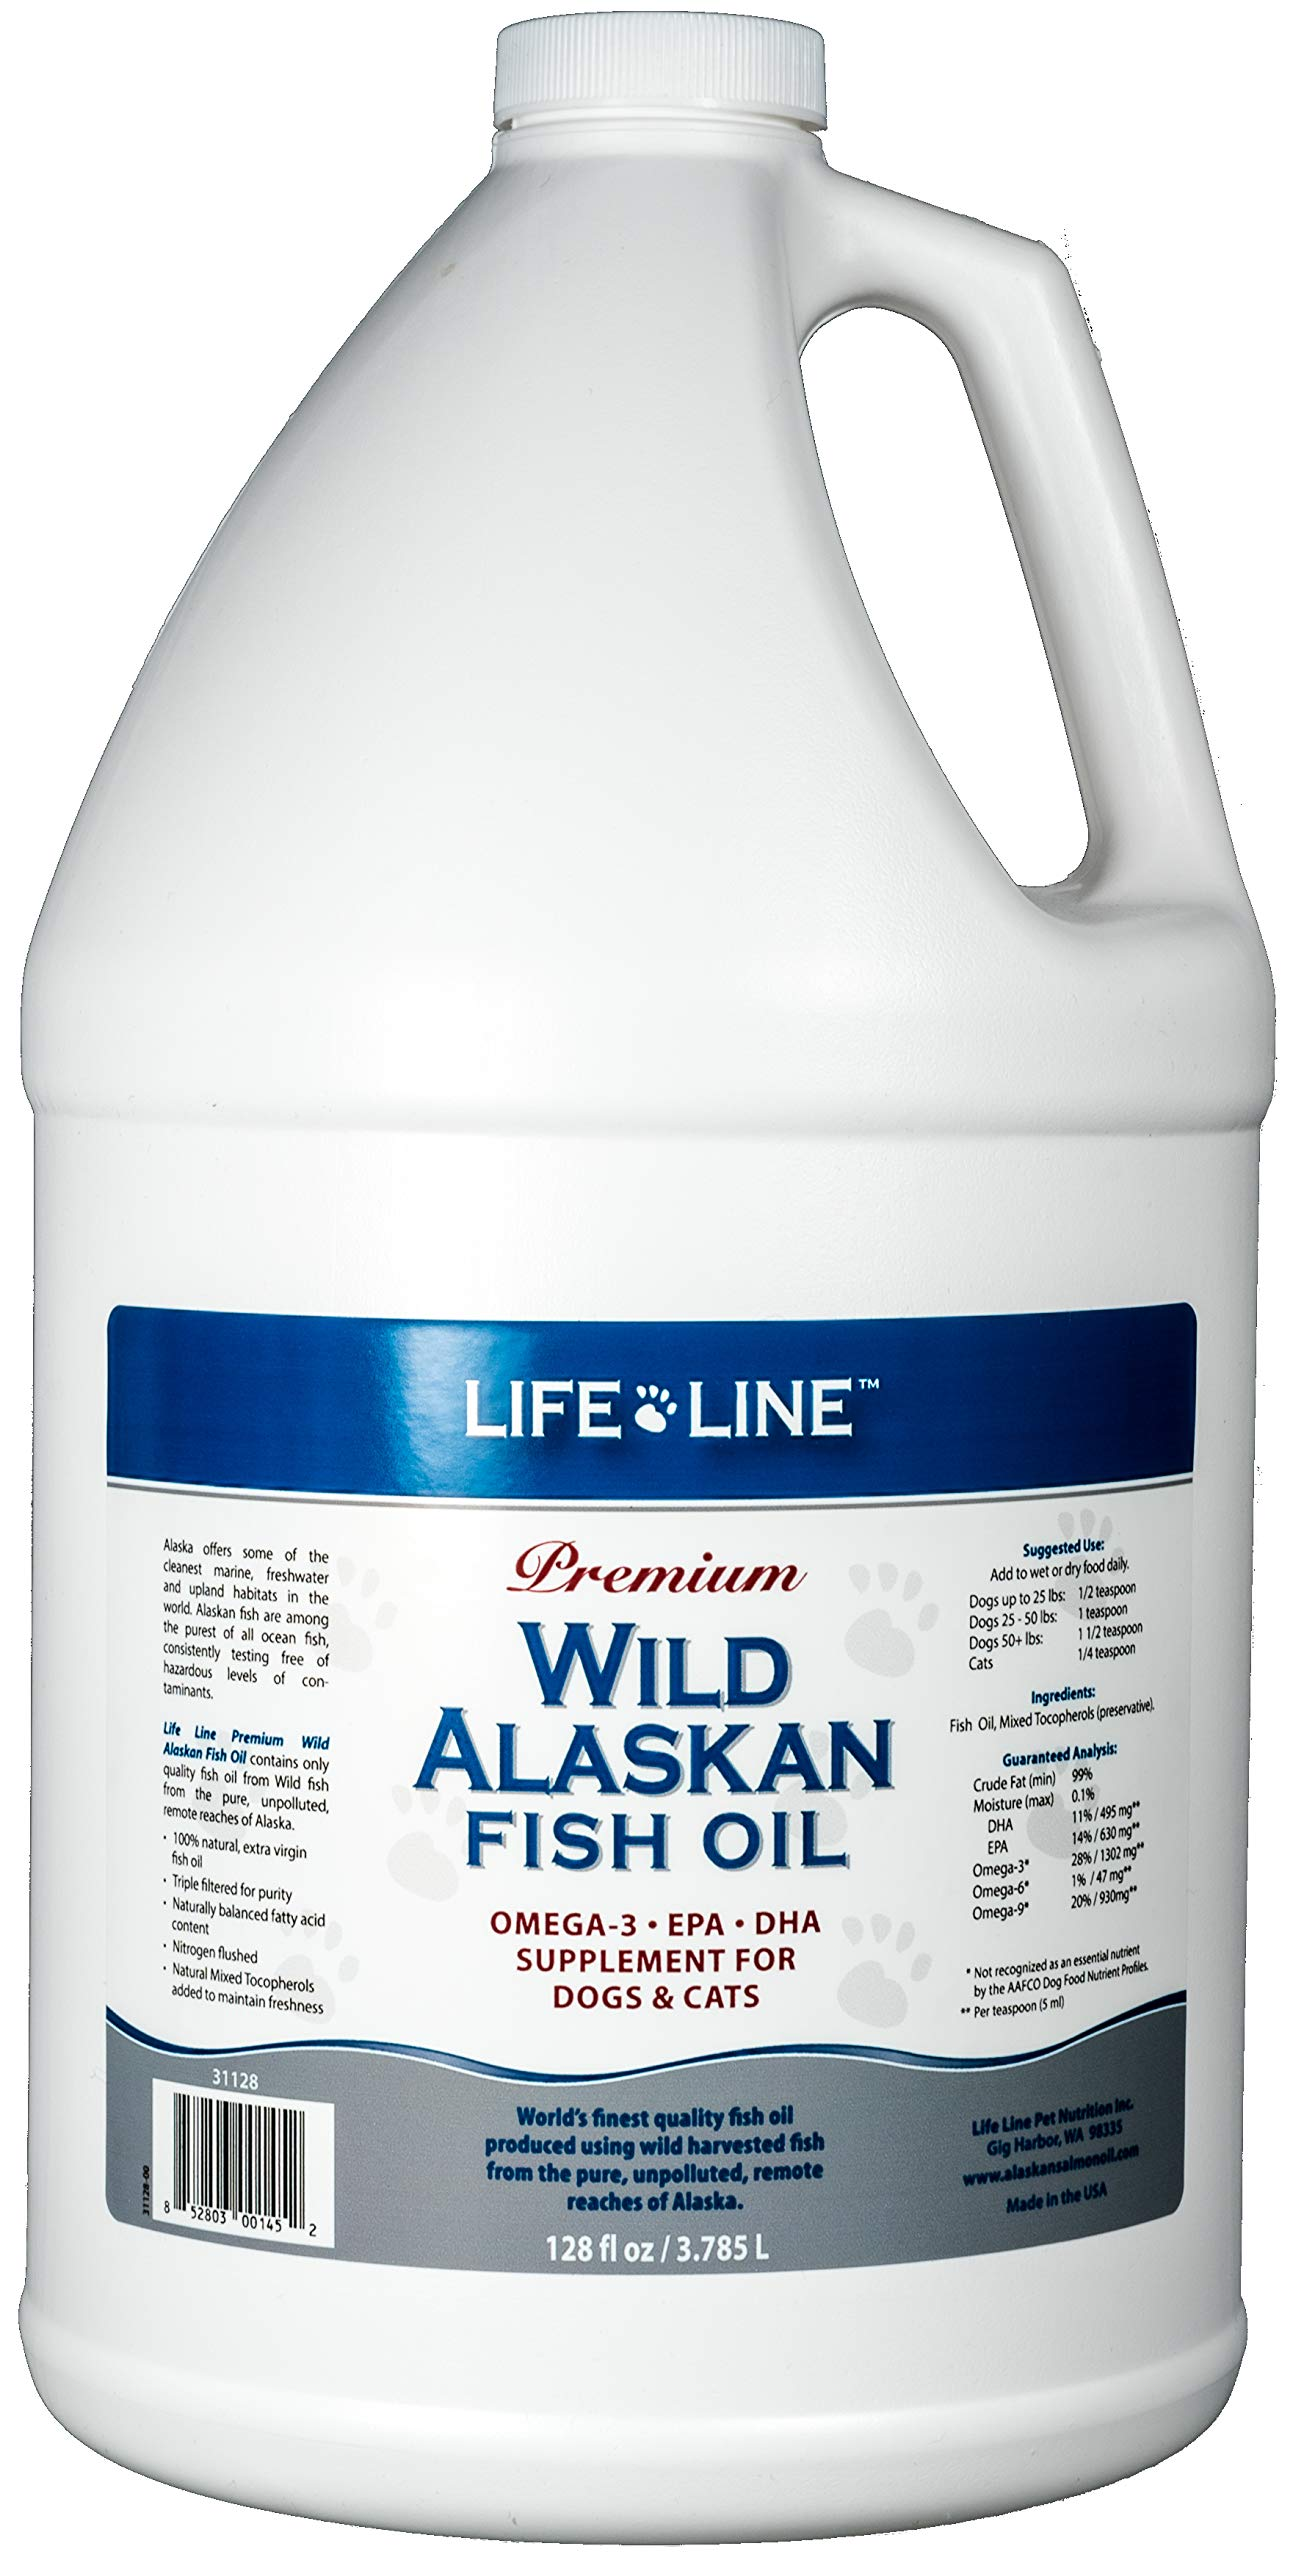 Life Line Pet Nutrition Wild Alaskan Fish Oil Omega-3 Supplement for Skin & Coat - Supports Brain, Eye & Heart Health in Dogs & Cats, 128oz by Life Line Pet Nutrition